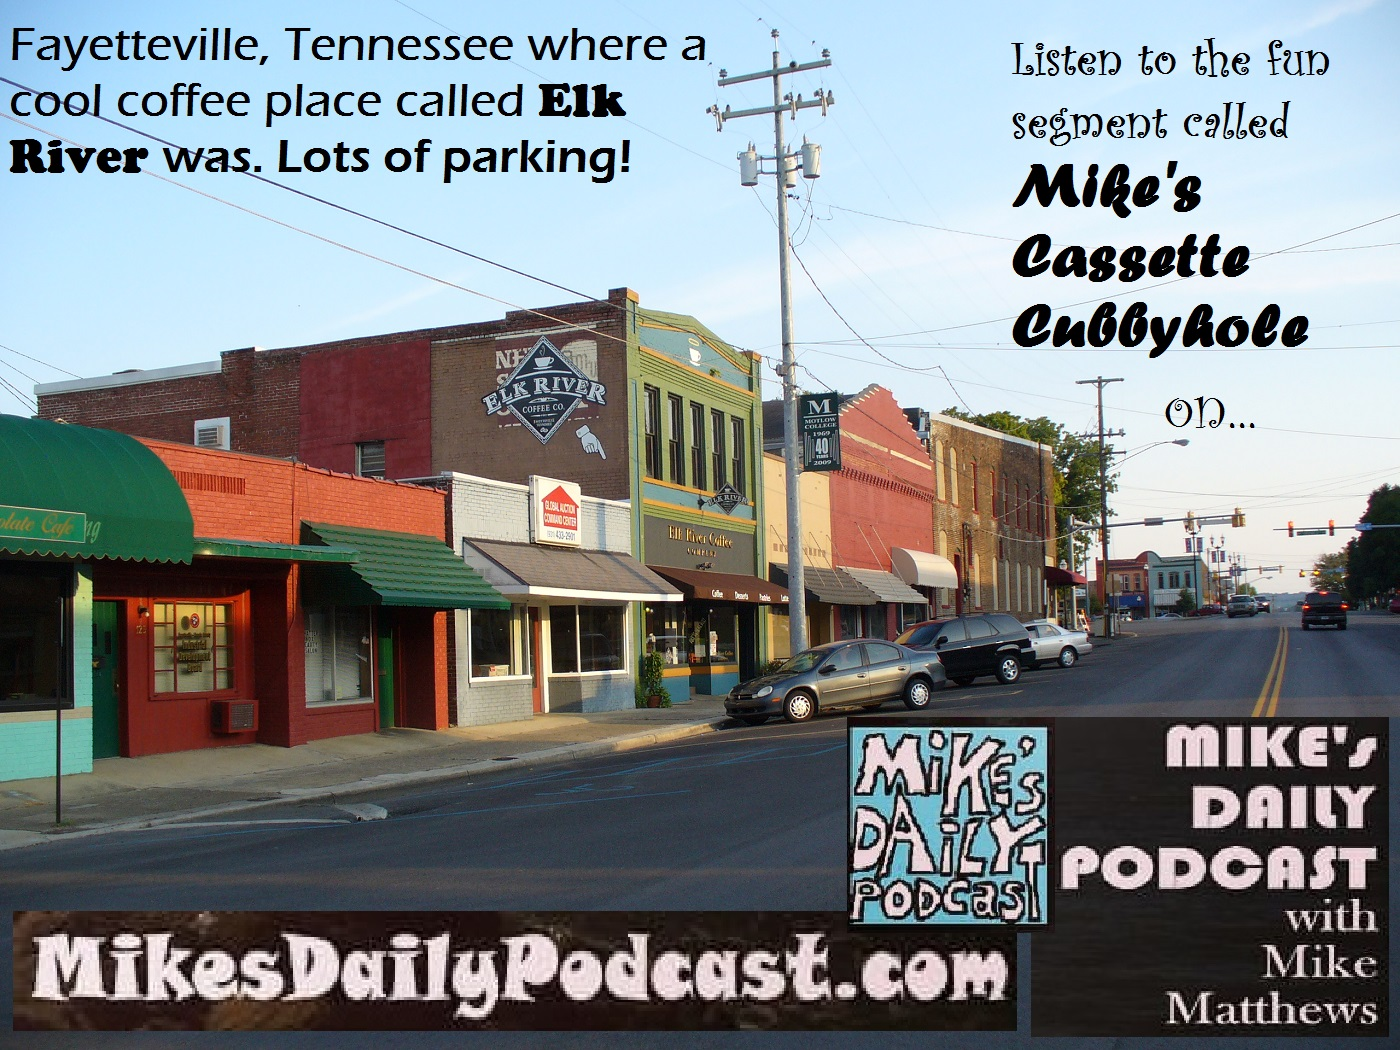 MIKEs DAILY PODCAST 1027 Fayetteville Tennessee Elk River Coffee